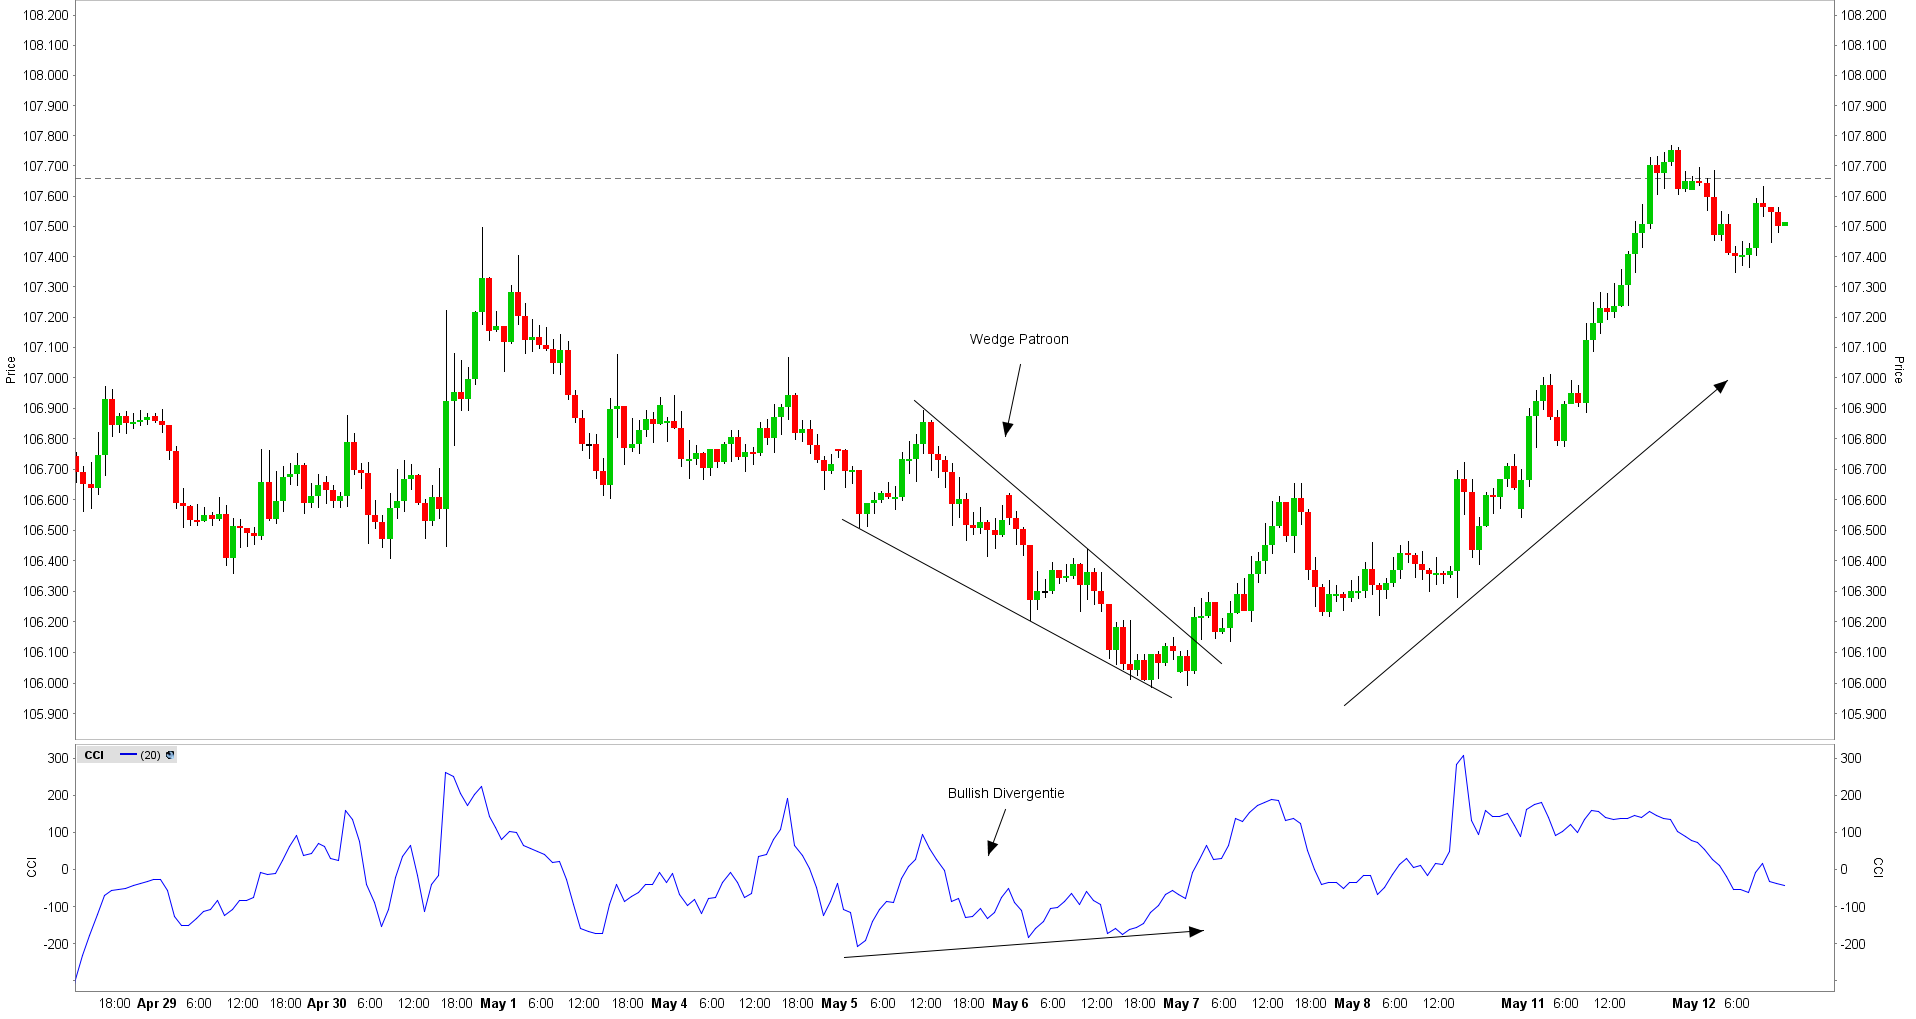 Commodity channel index wedge